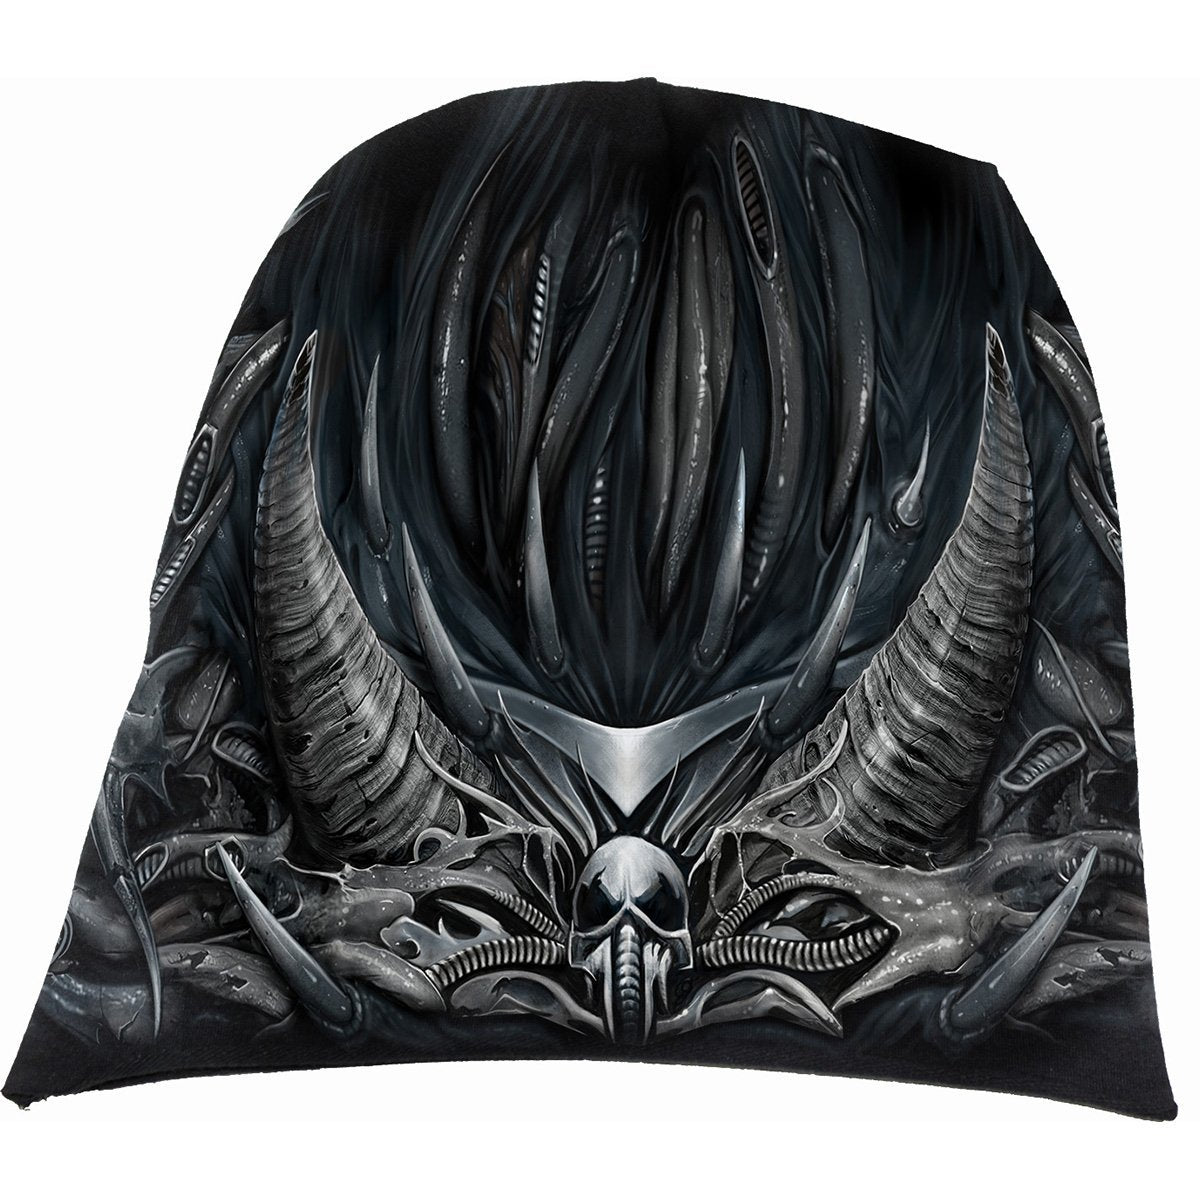 Armored Skull Warrior Men's Black Beanie - Rebels Depot